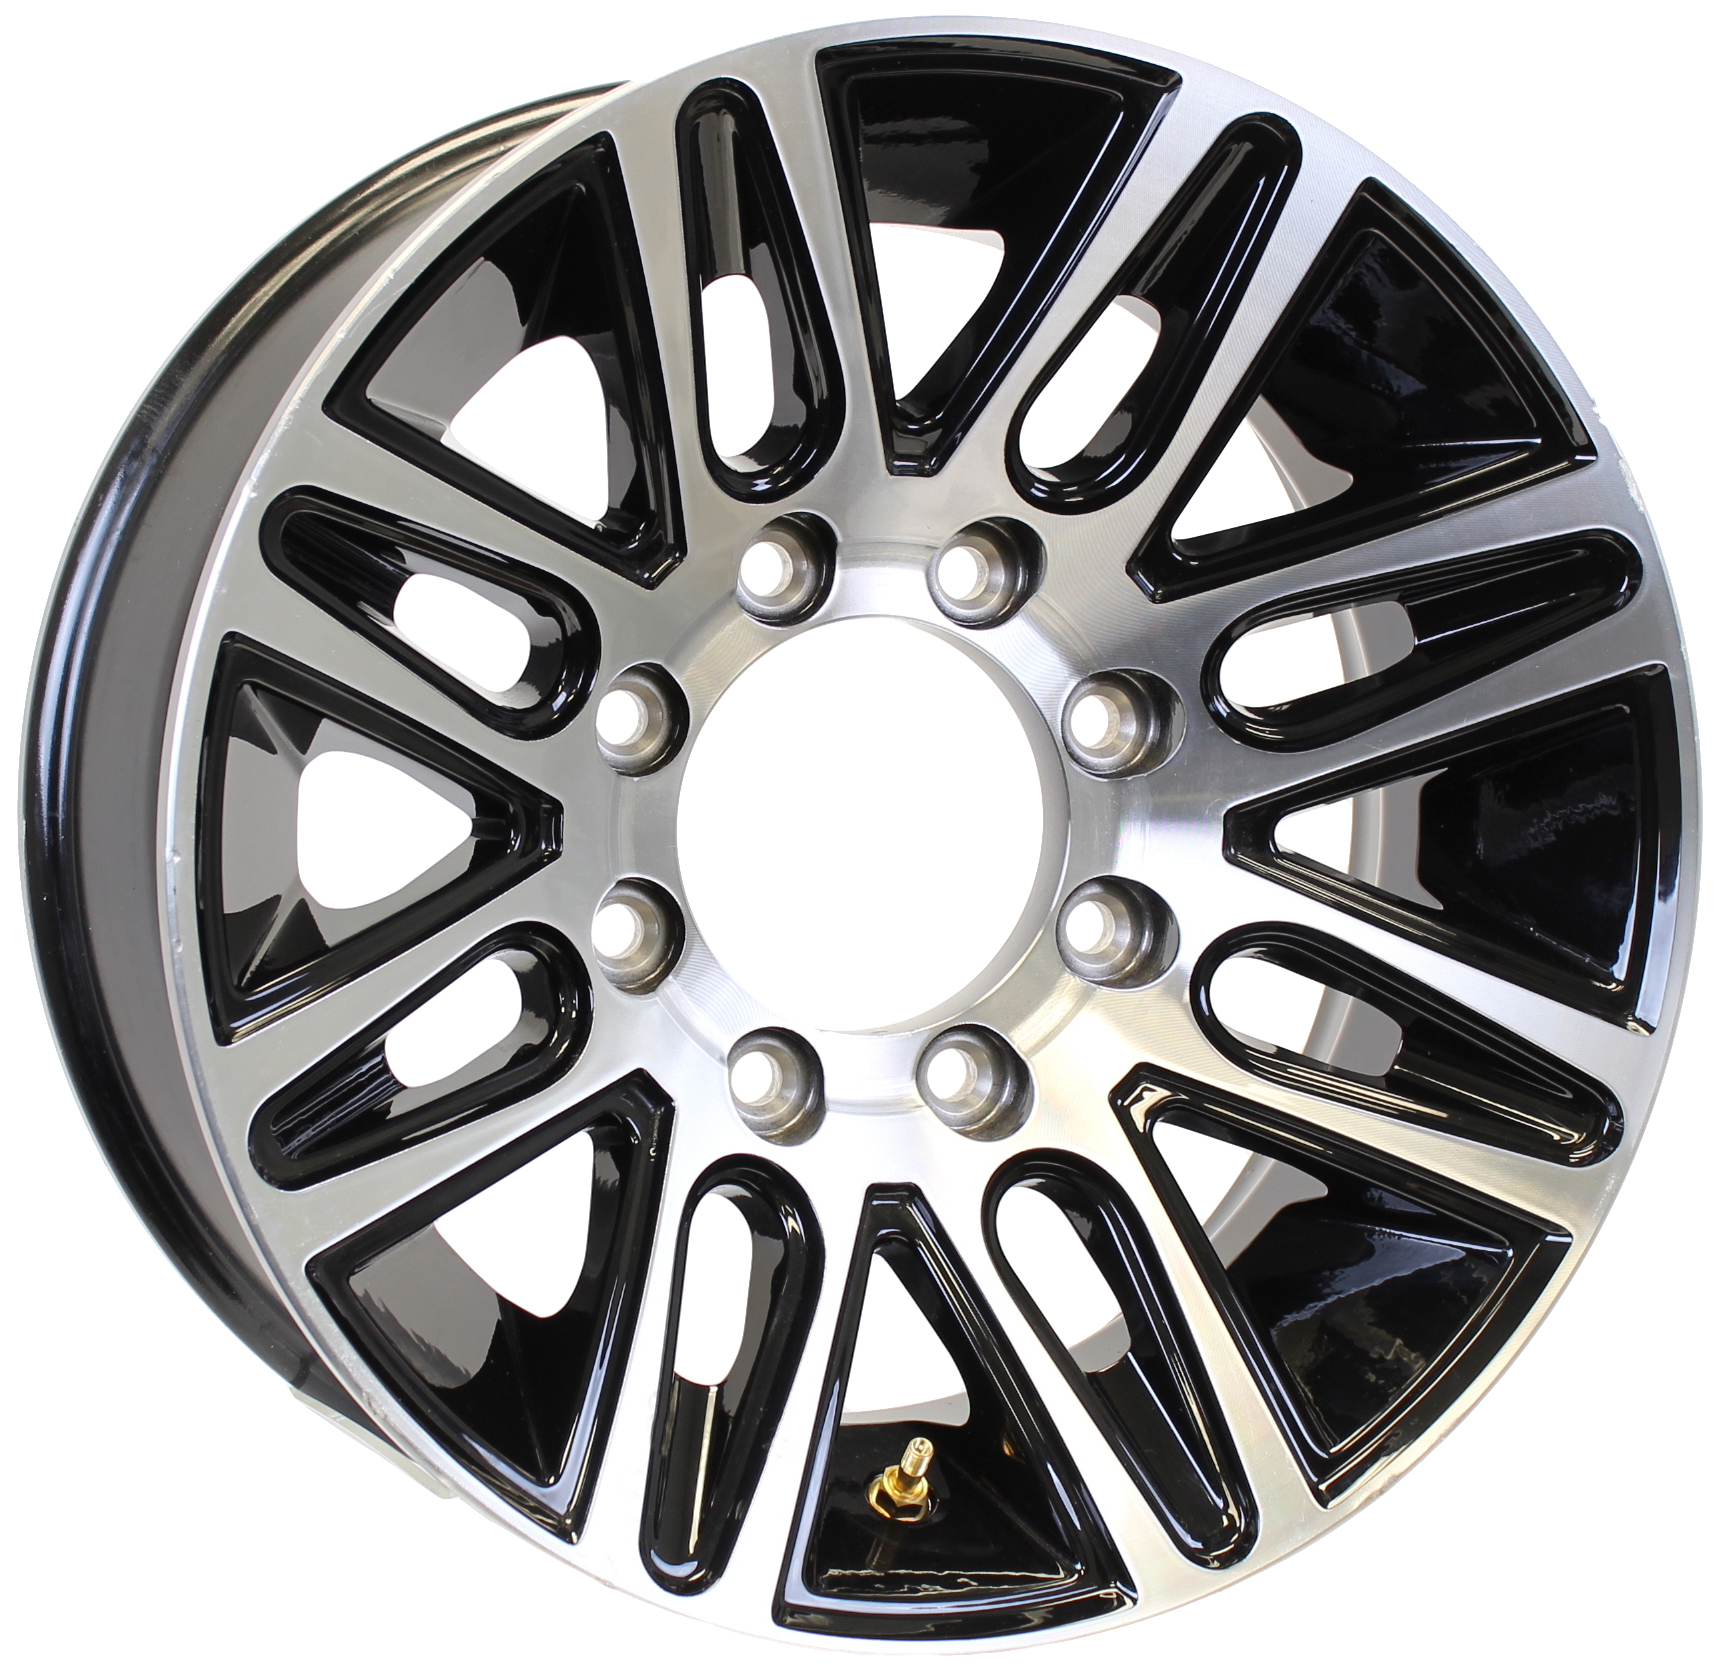 Pinnacle 17.5x6.75; 8-Lug Black Machine Aluminum Trailer Wheel Image